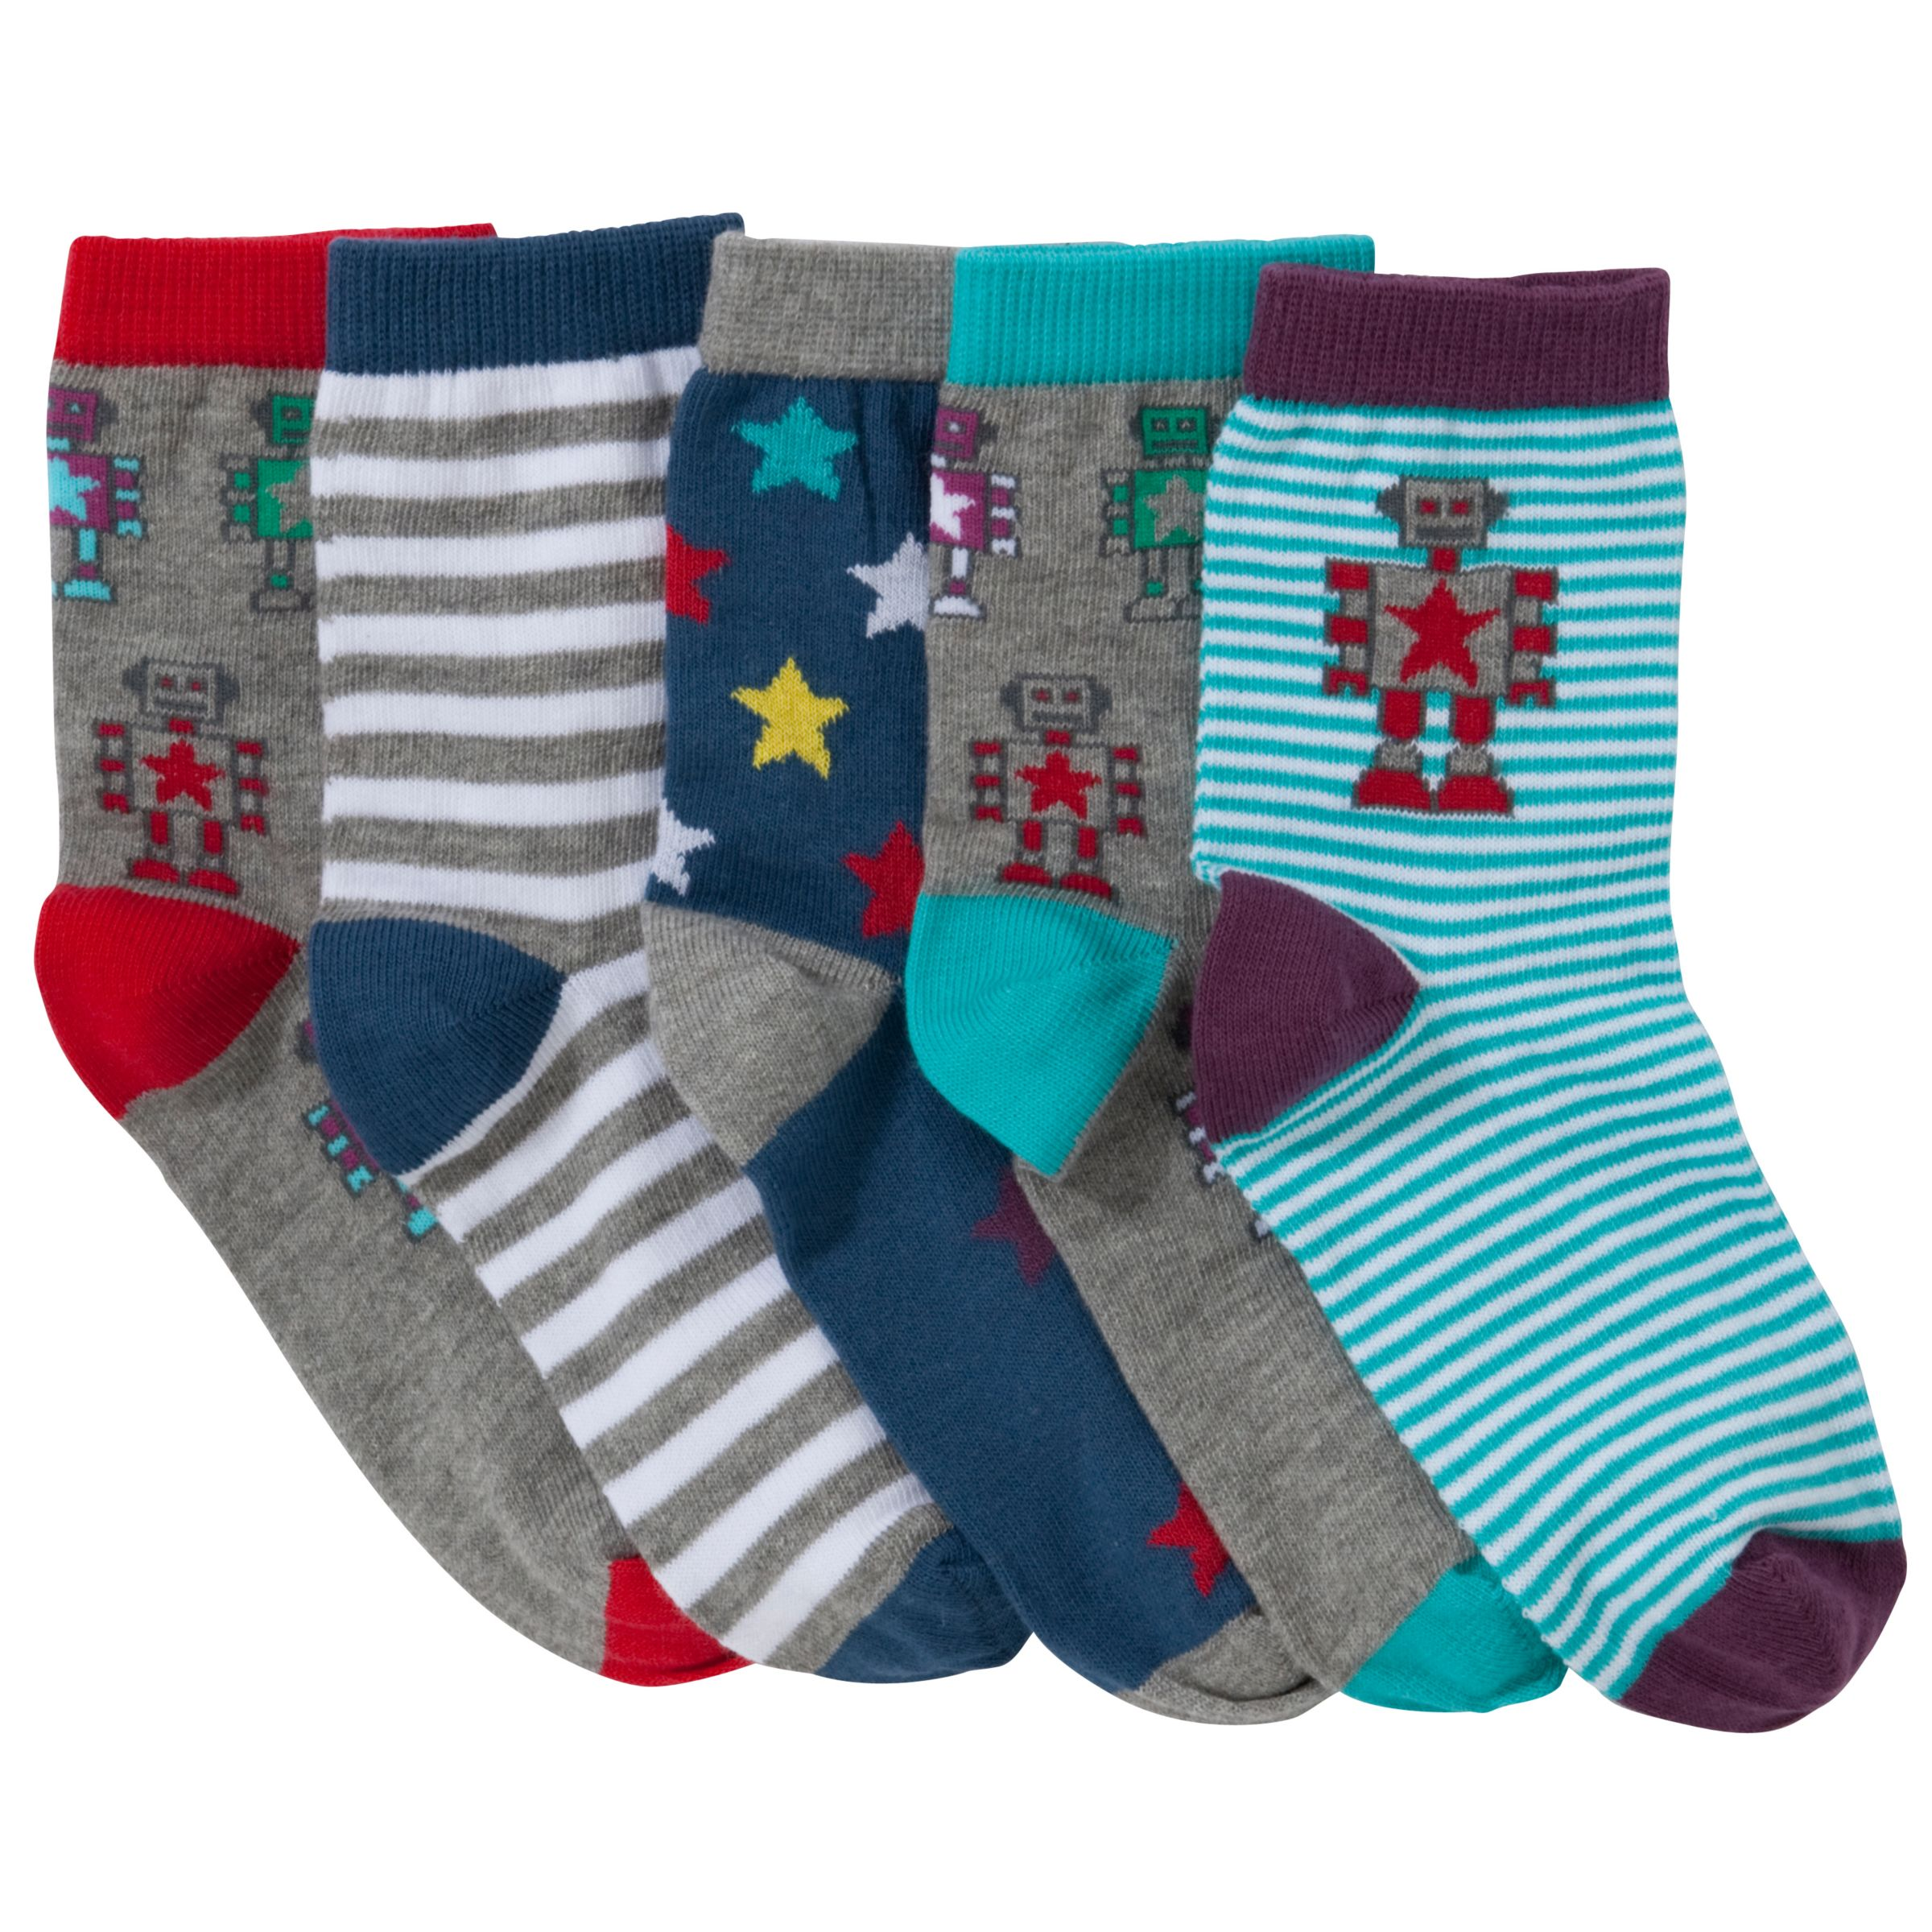 John Lewis Boy Robot Socks, Pack of 5, Multi